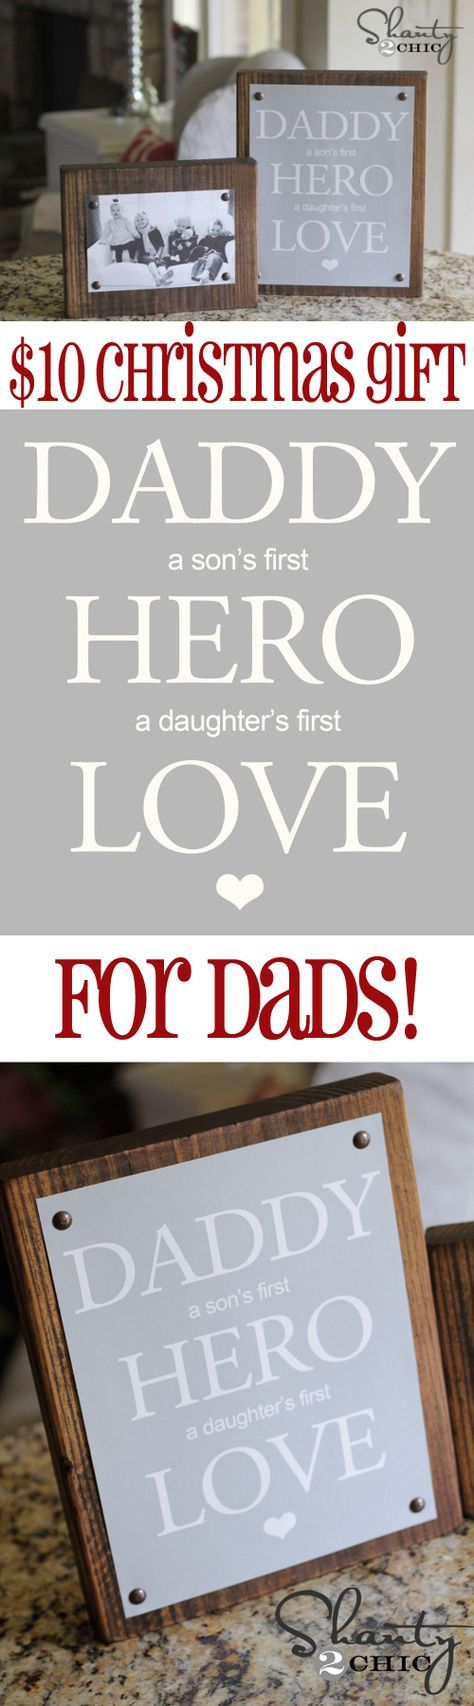 father s day gift and free printables easy diy christmas gifts - Diy Christmas Gifts For Dad